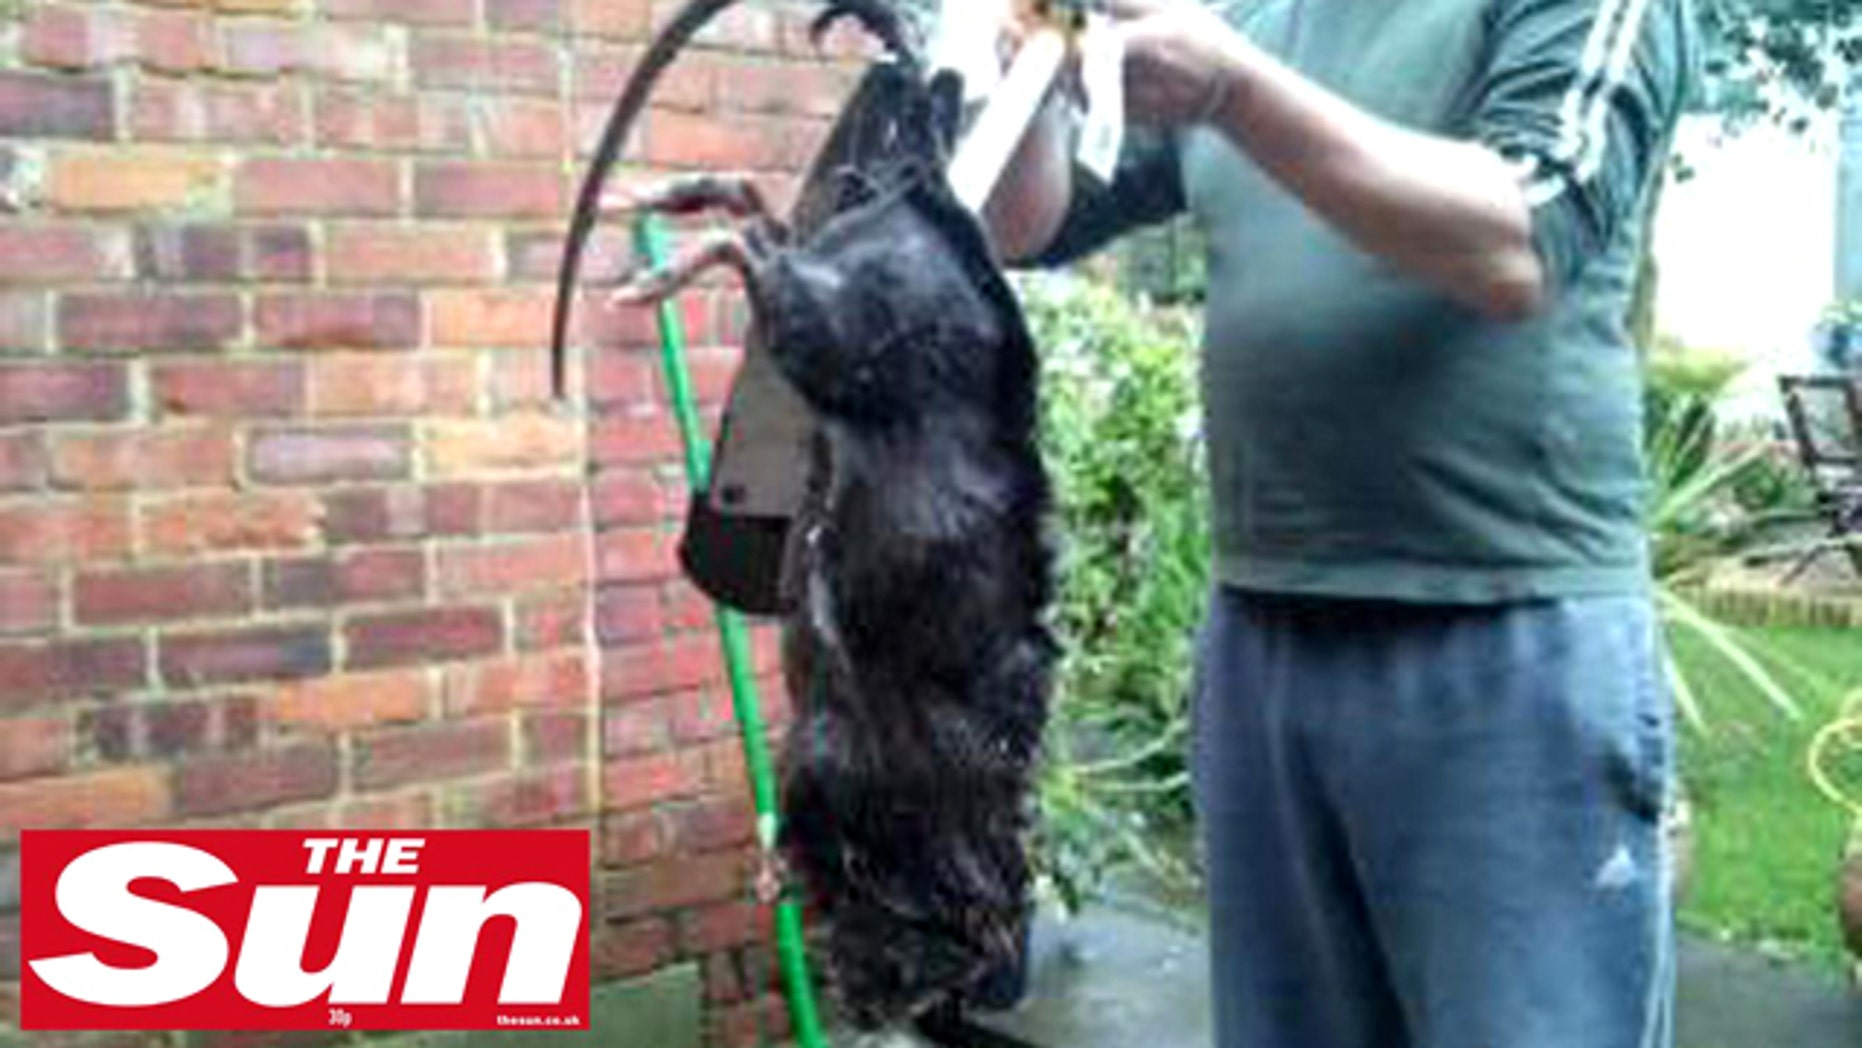 Ratzilla? This giant critter, either a rat or a South American copyu, was killed in a housing complex in England.